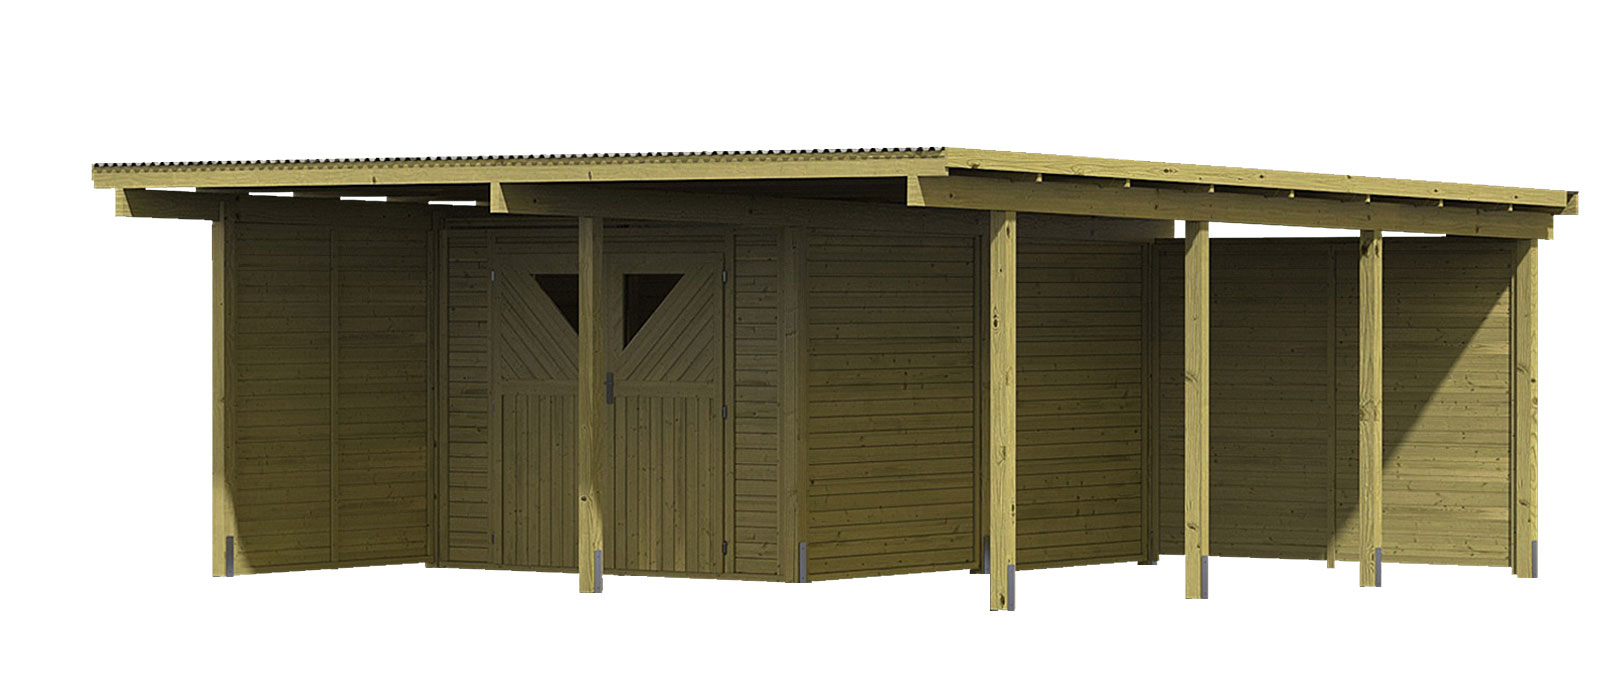 karibu eco carport mit abstellraum 2 kdi 563x676cm wand. Black Bedroom Furniture Sets. Home Design Ideas